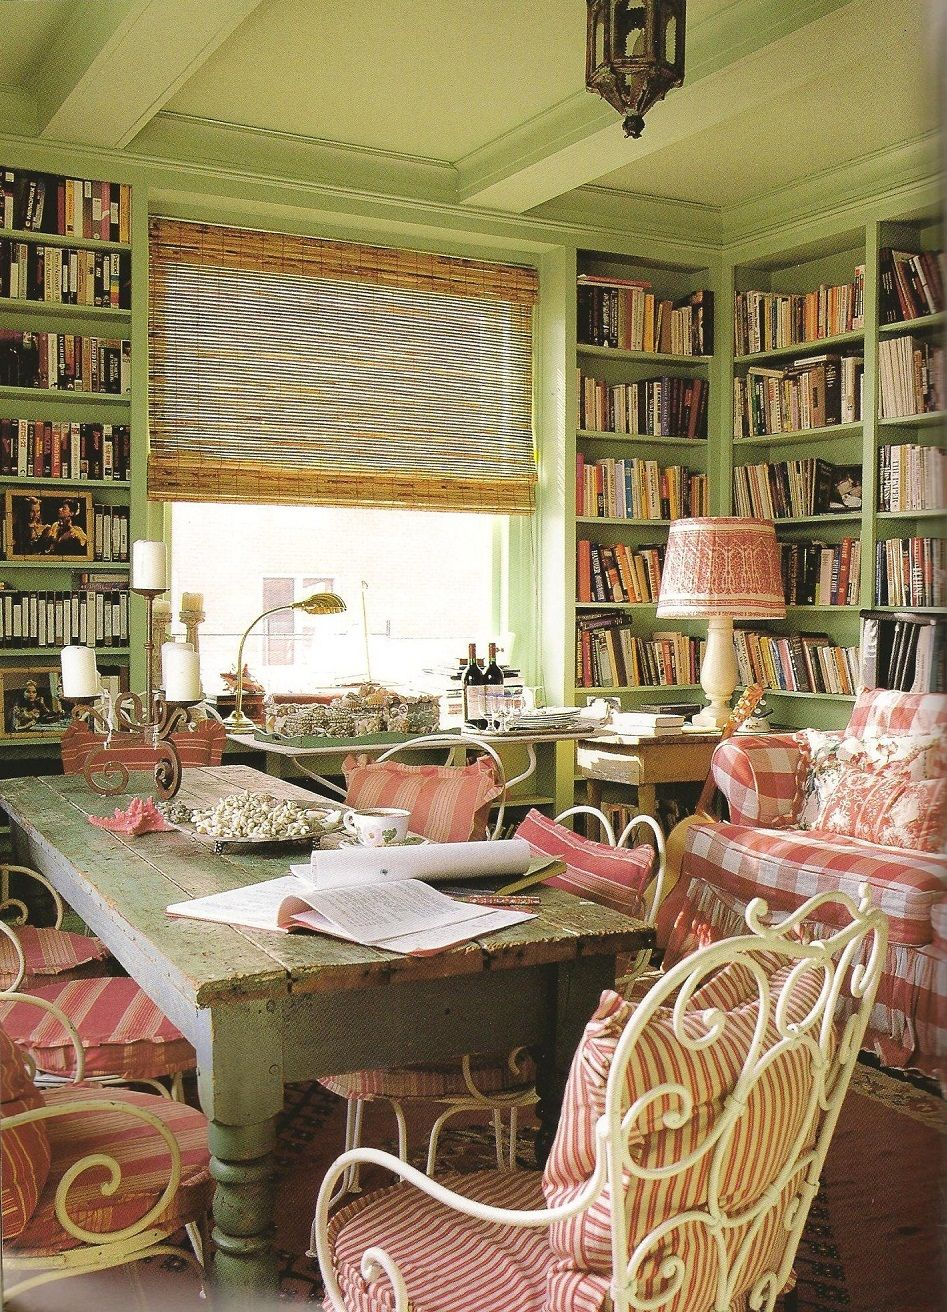 'A Room of Her Own' - getting to explore & experience how women carved out a personal space in their homes. This library overlooking the East River in NY became a place of inspiration for Denise Dummont, a Brazilian native, who added a flair of Rio de Janeiro to this room.